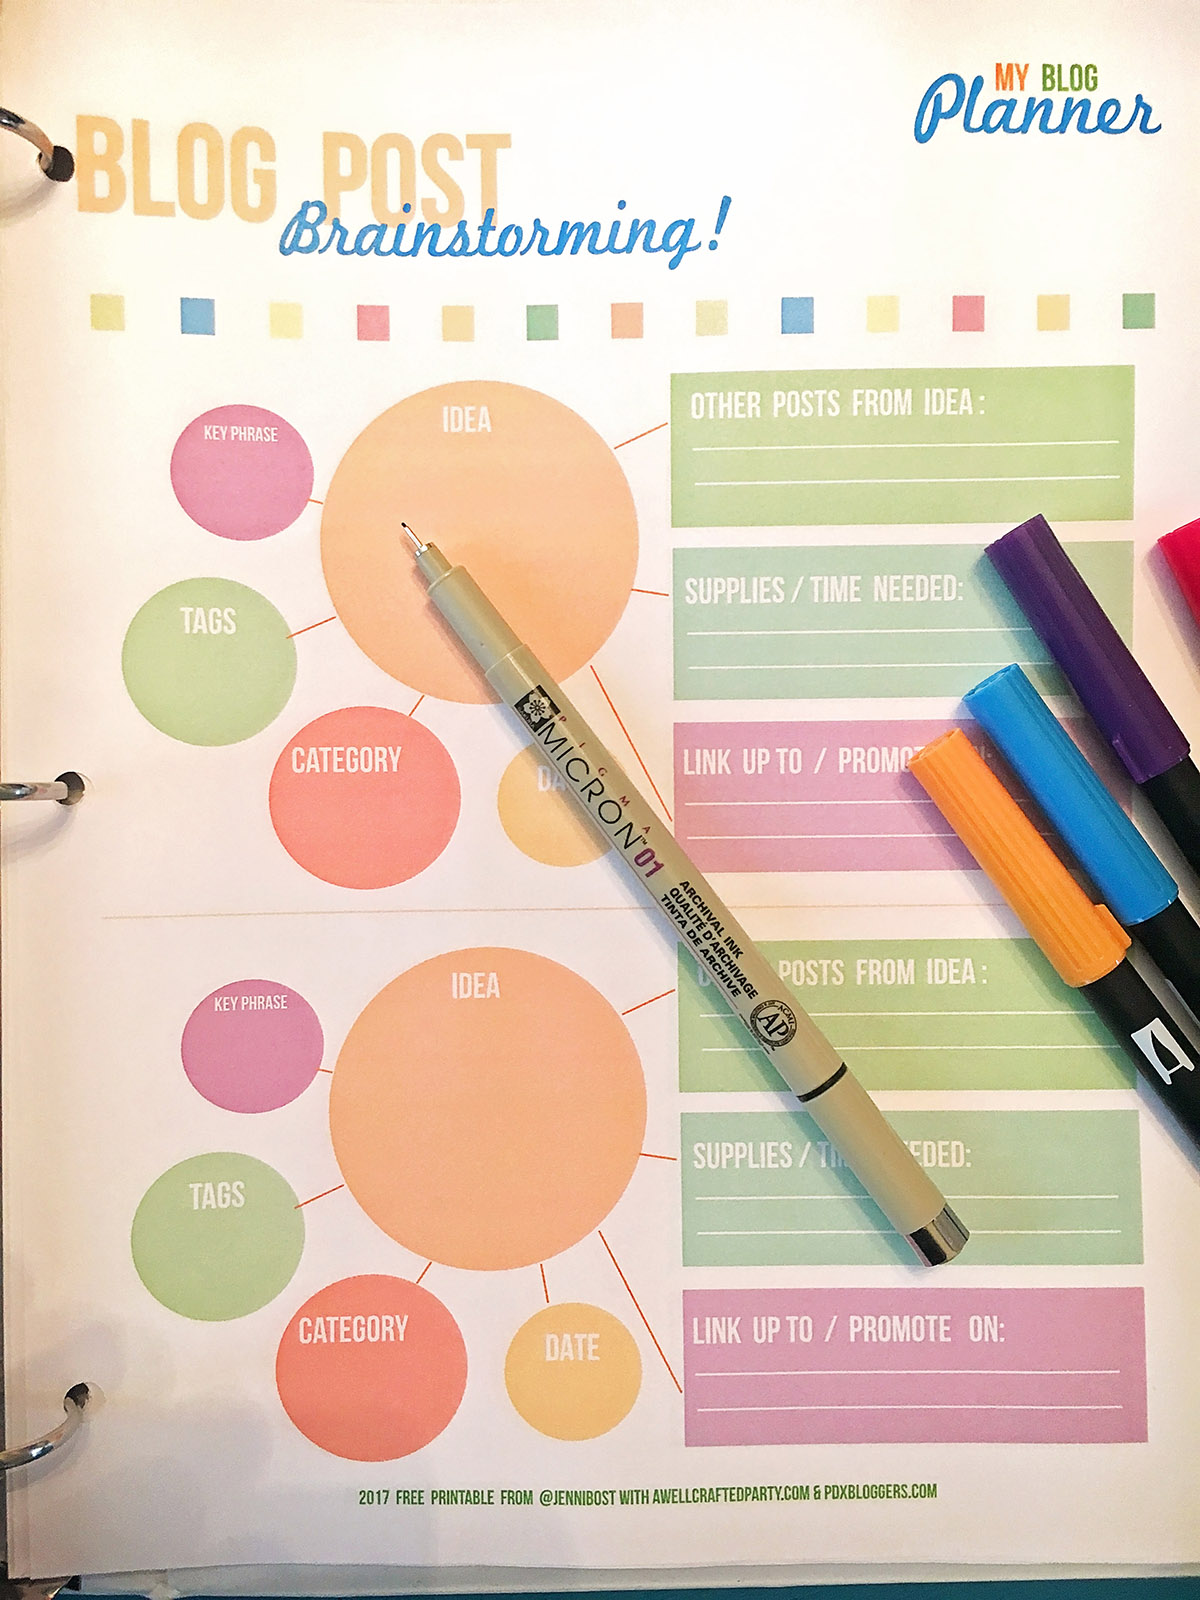 Blog Brainstorming Worksheets Free Printables - A Well Crafted Party